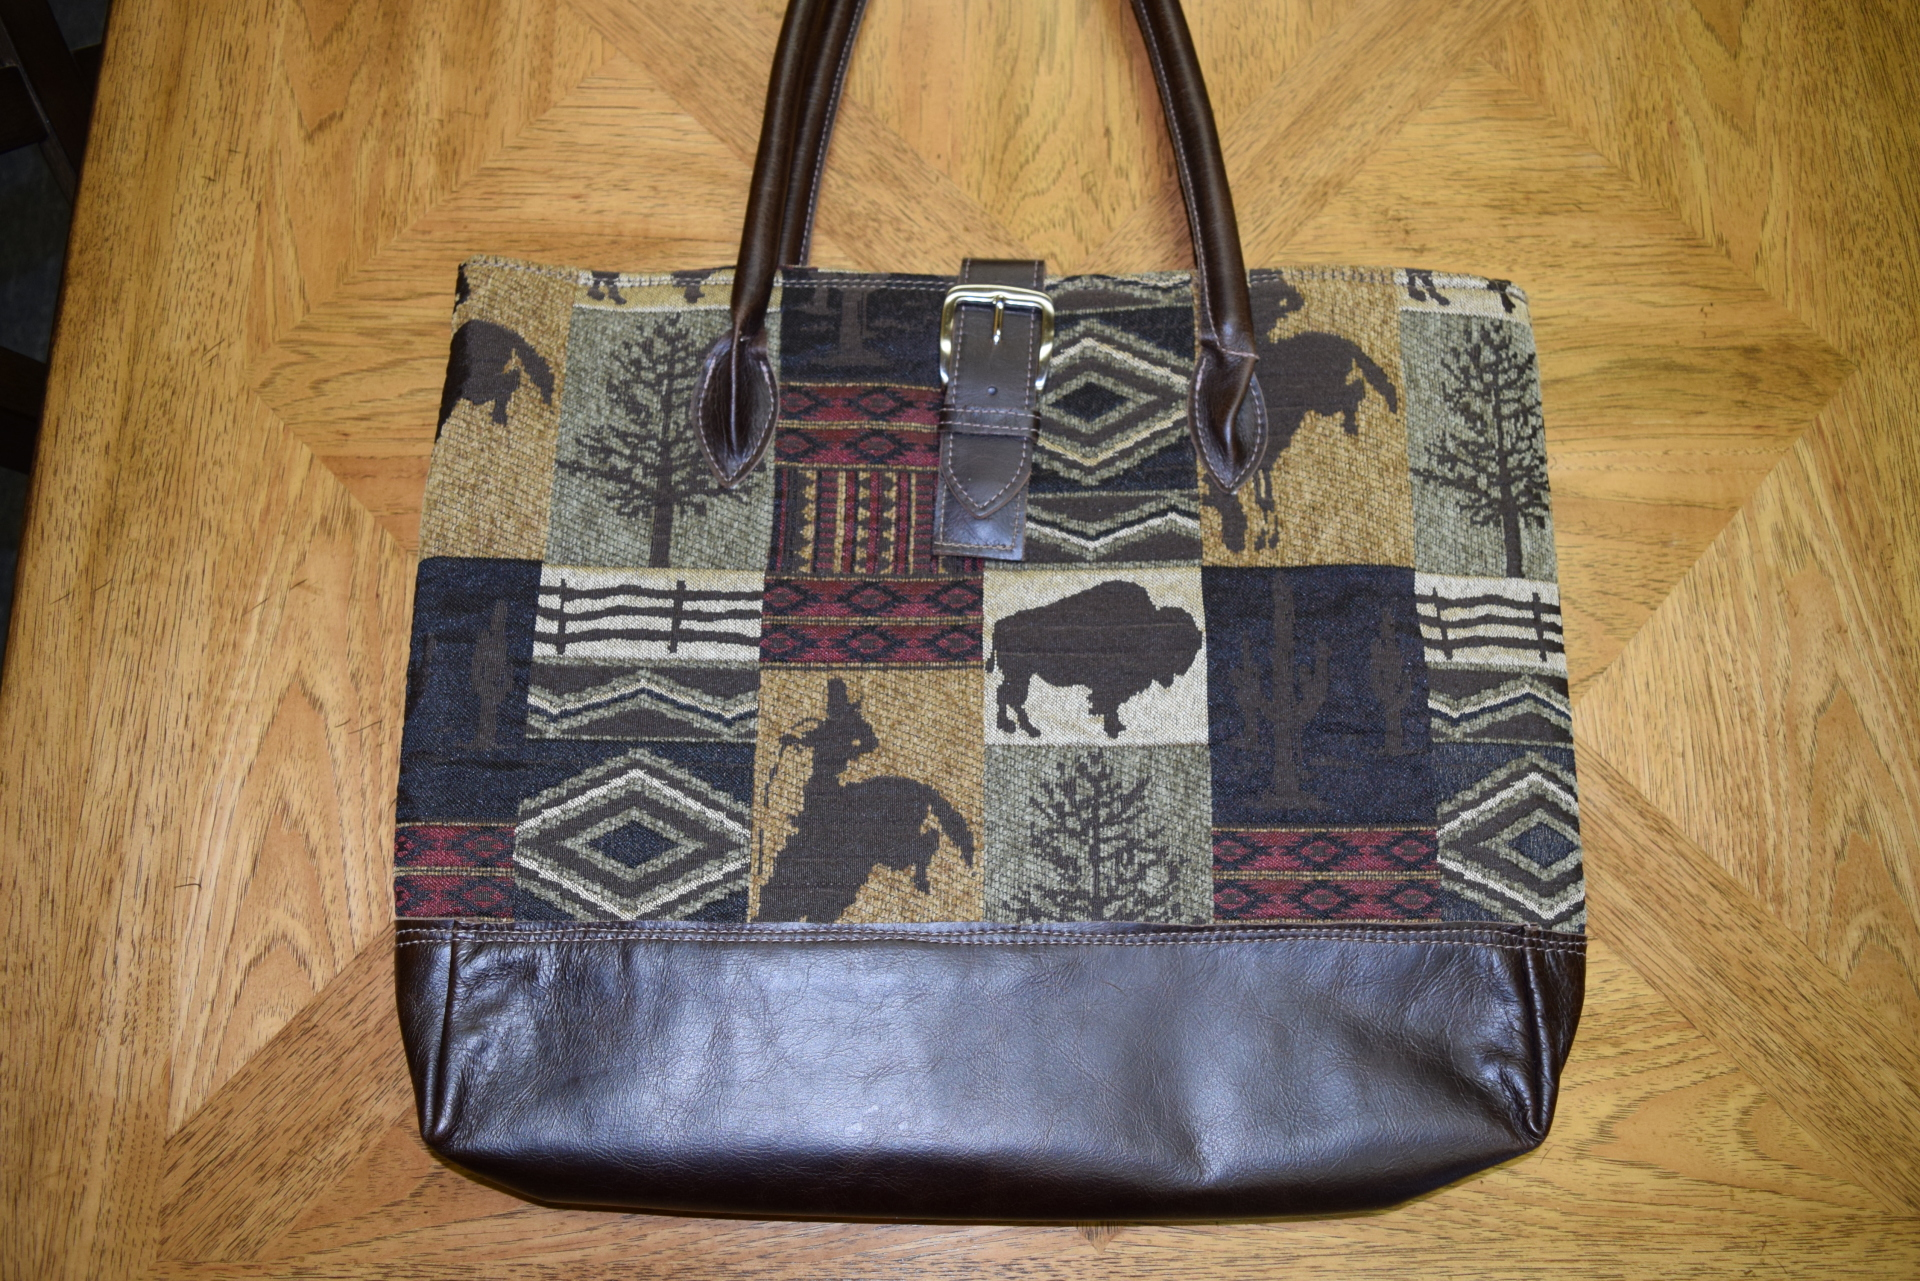 #B20WWS - SAGE WILD WEST BROWN LEATHER BUCKLE BAG - $189.95